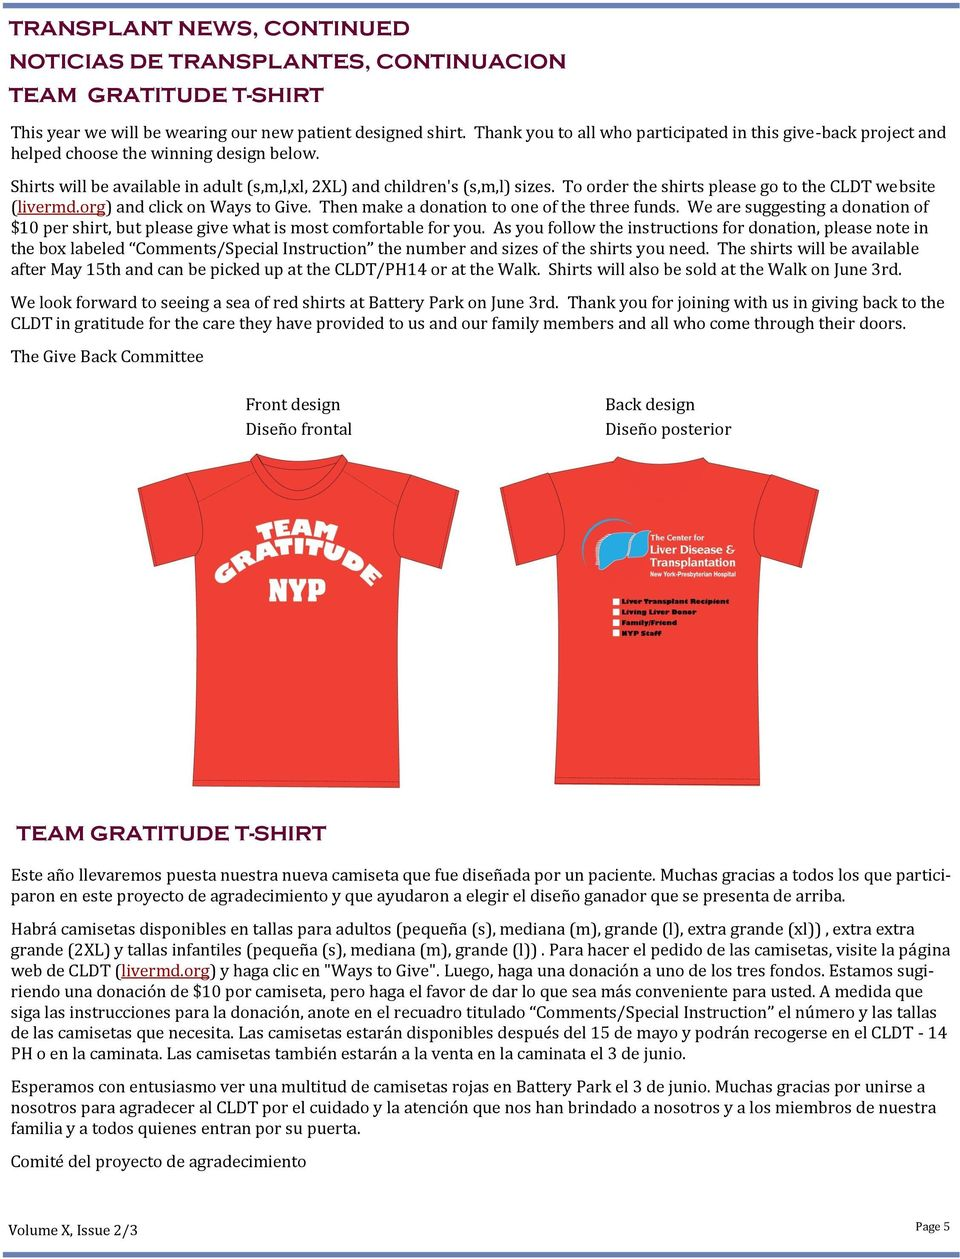 To order the shirts please go to the CLDT website (livermd.org) and click on Ways to Give. Then make a donation to one of the three funds.